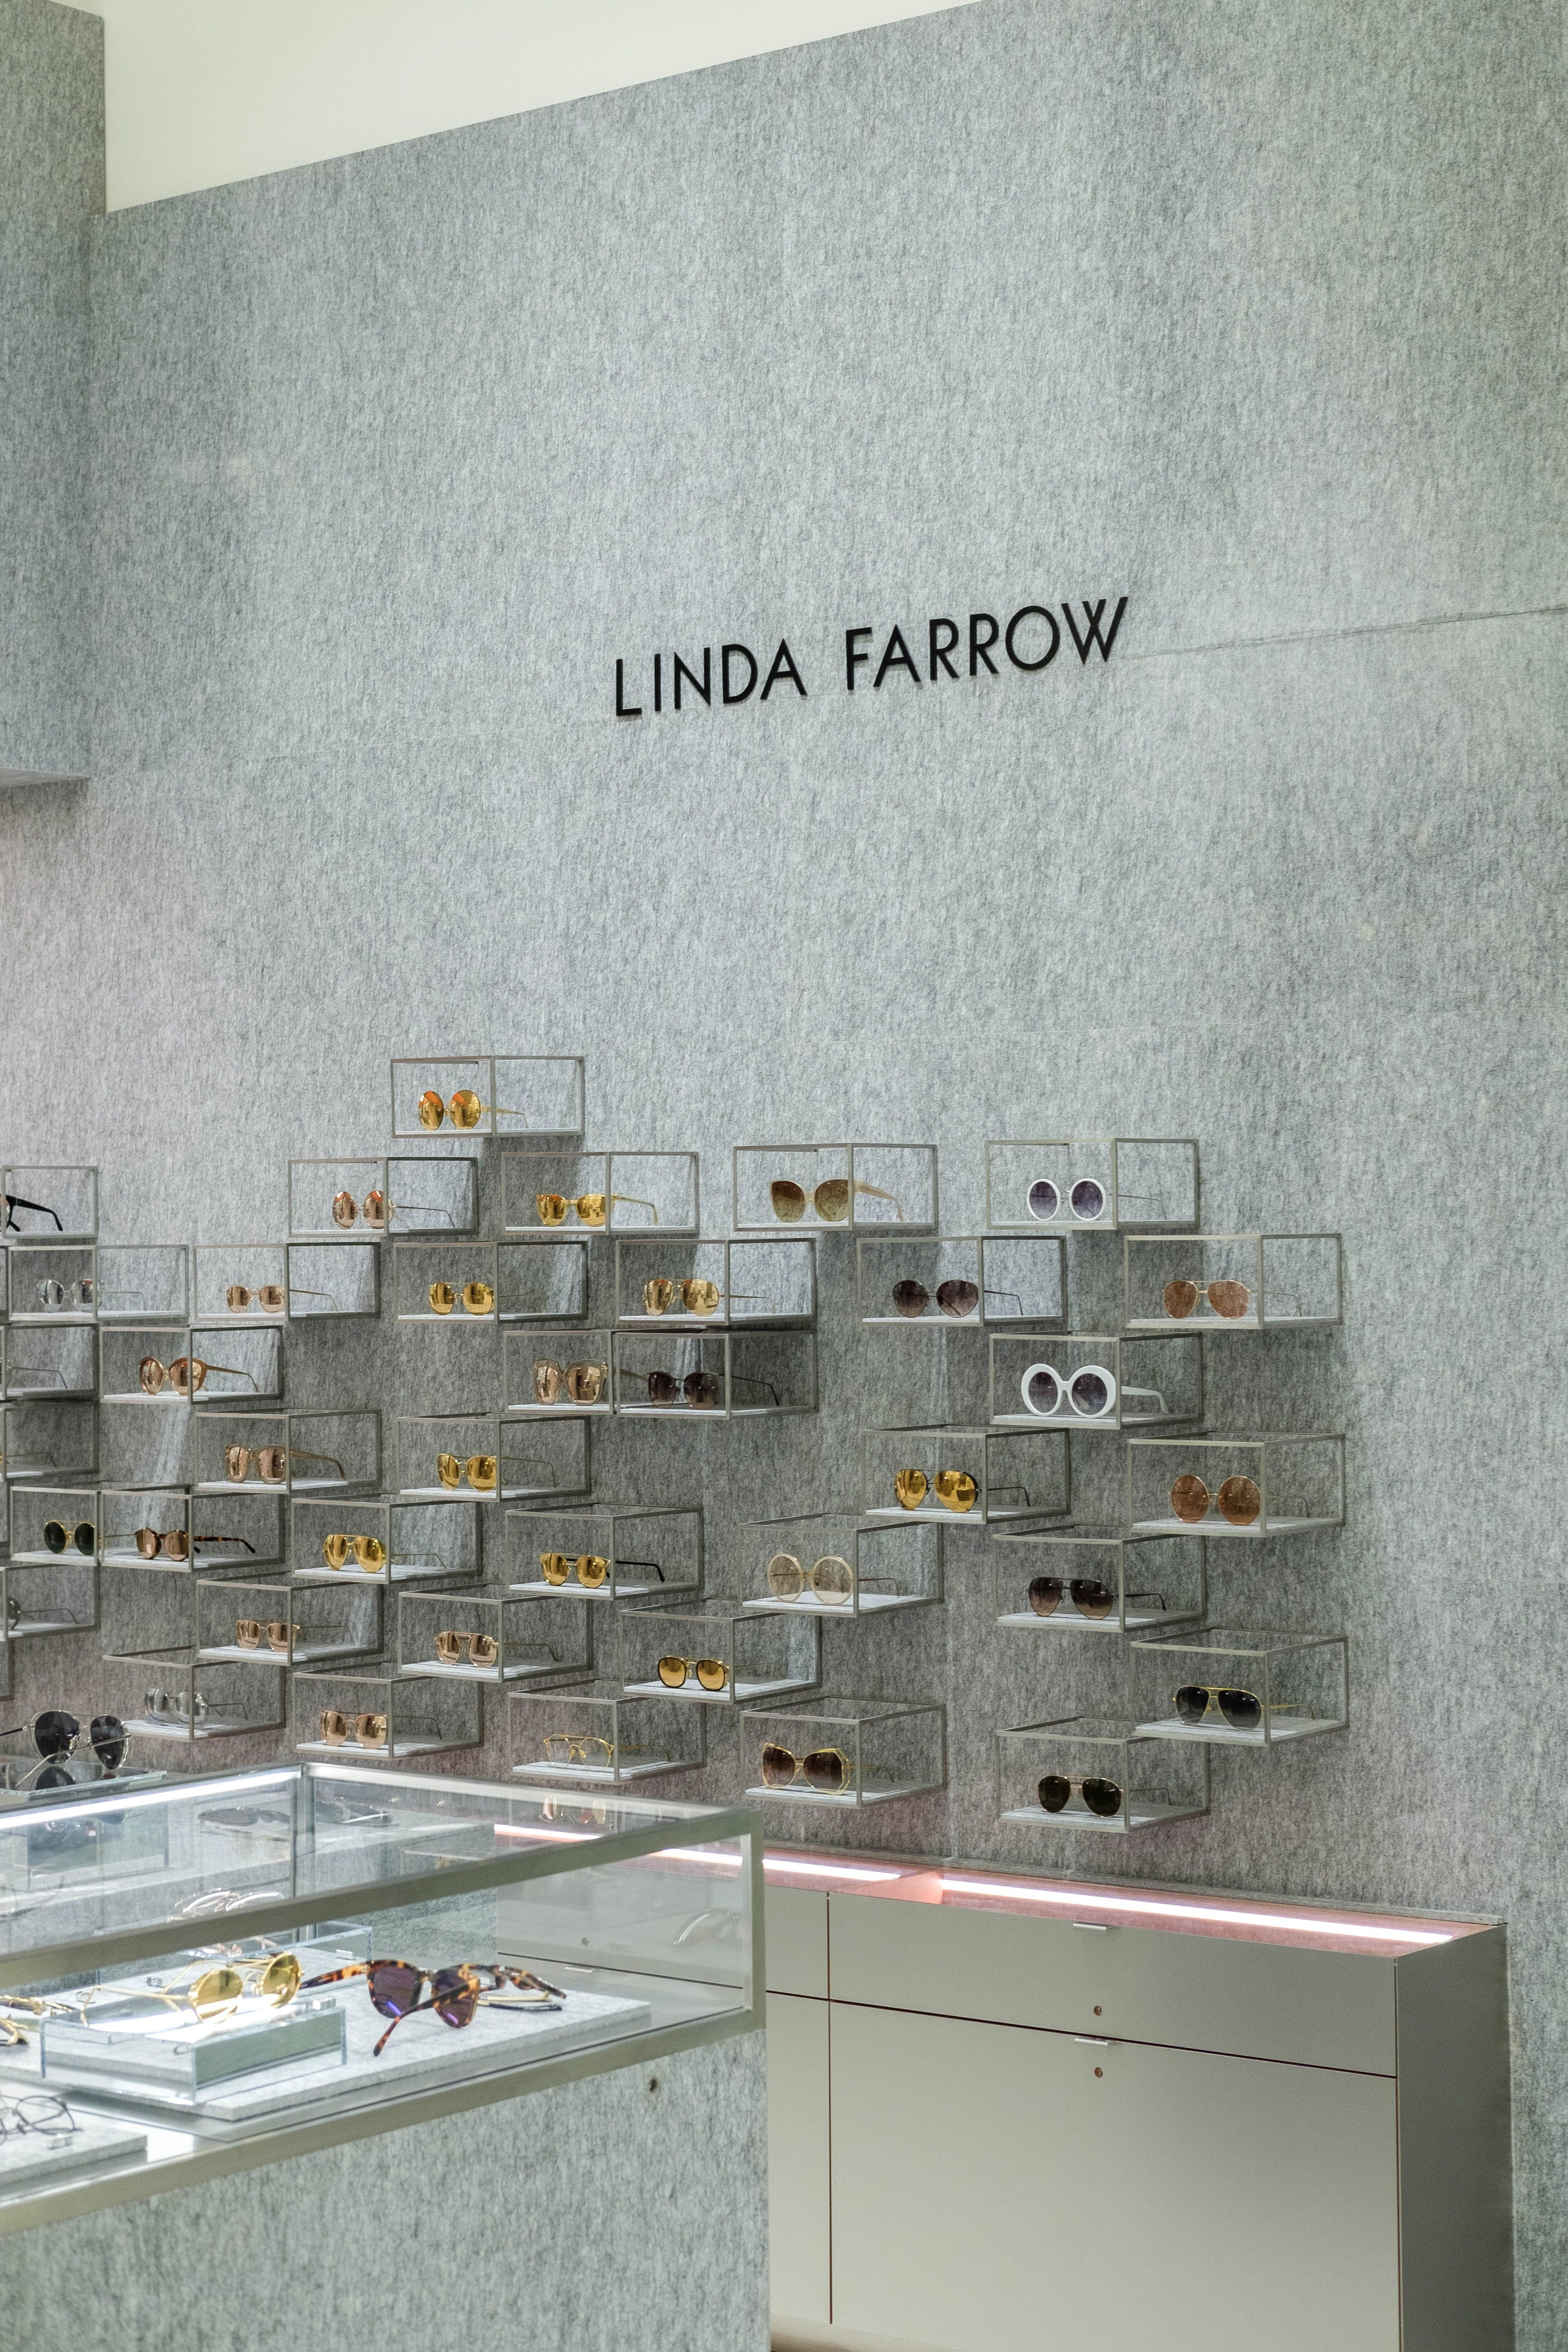 c388eb4bc22 ... Stores by Linda Farrow.   LFstore  Come and visit our newly opened  space at Selfridges (London